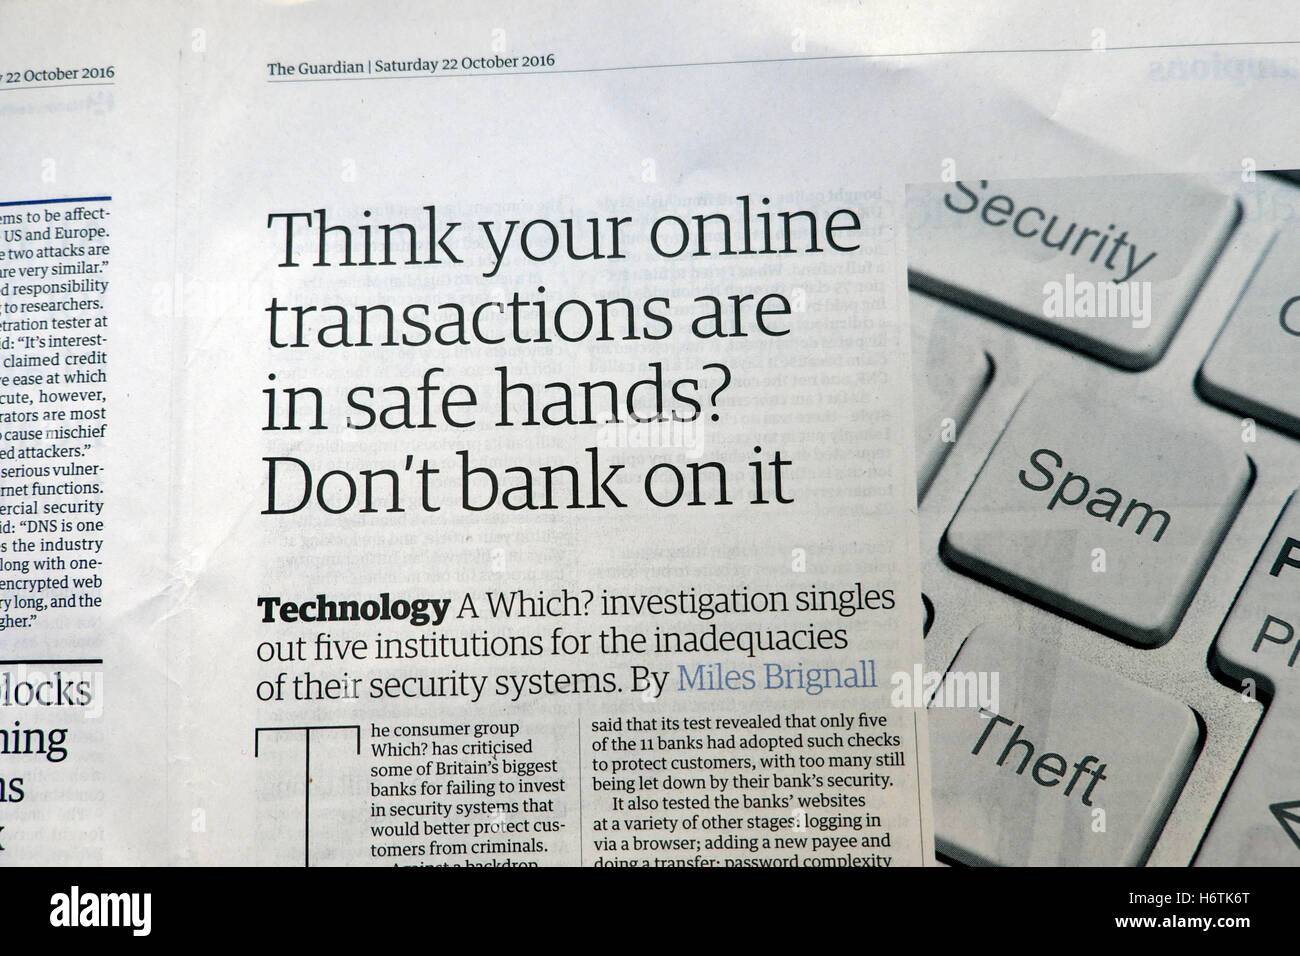 'Think your online transactions are in safe hands?  Don't bank on it'  Guardian newspaper article 2016 - Stock Image